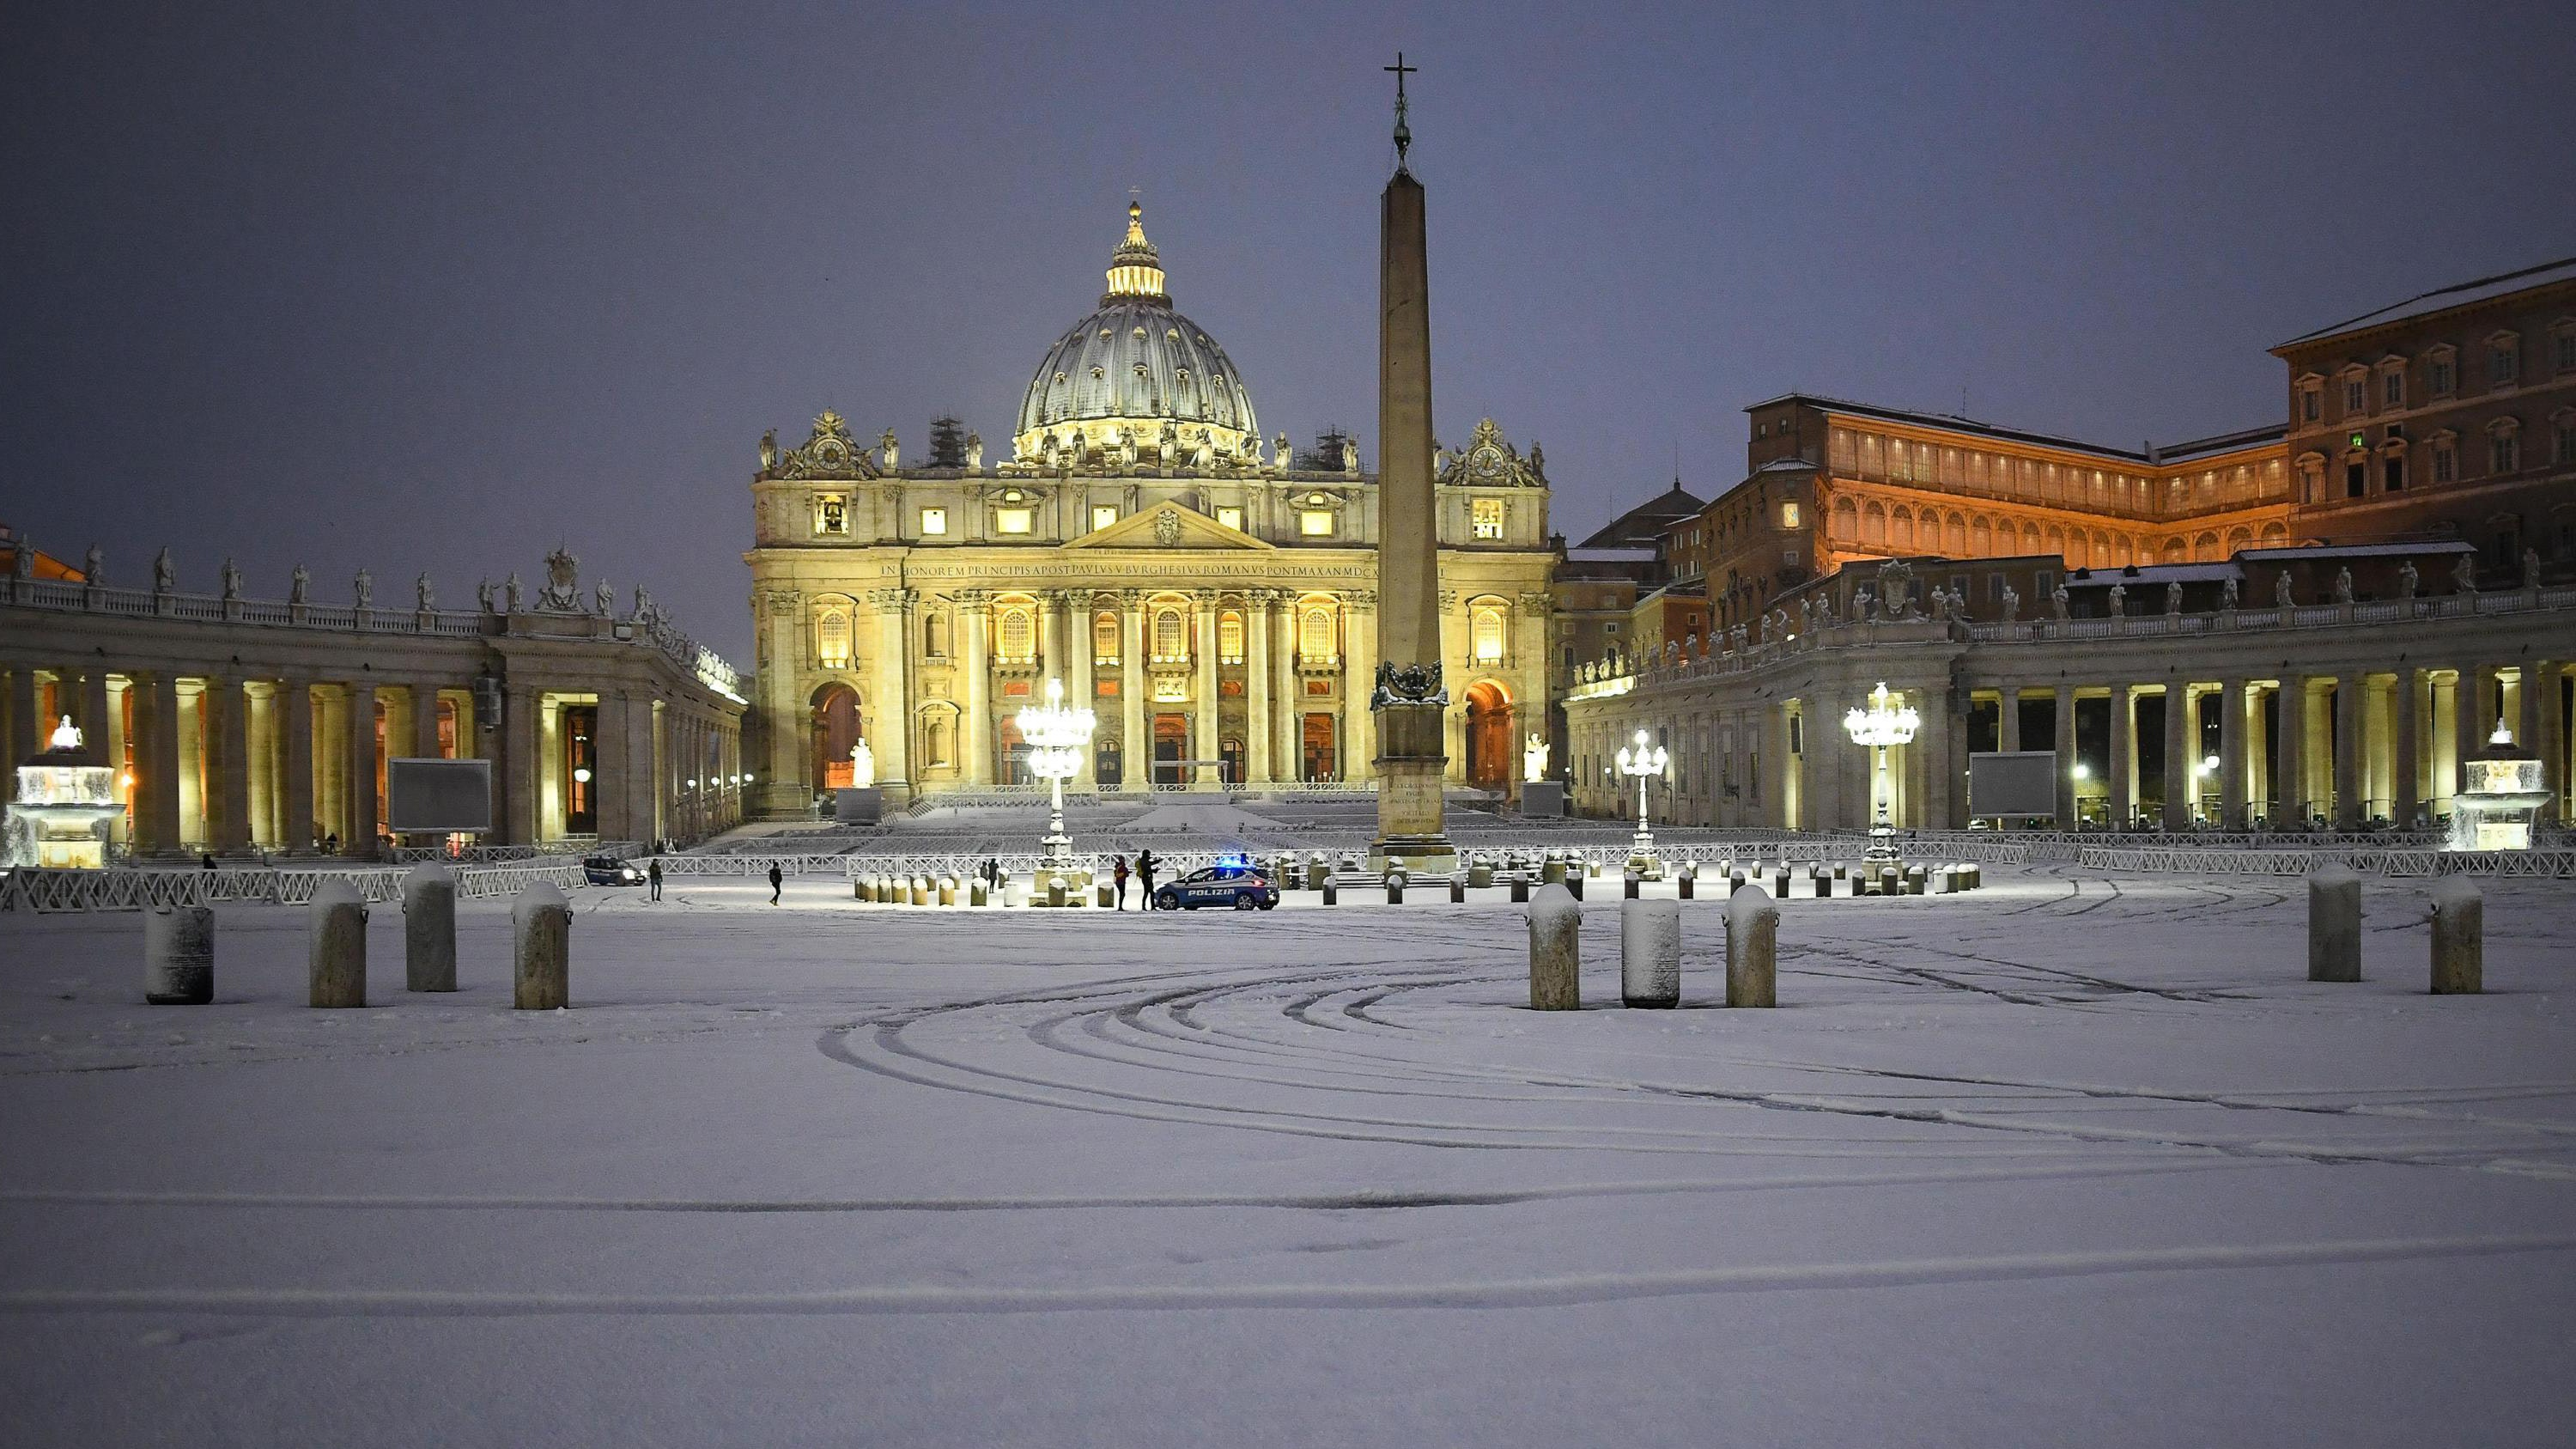 http://home.bt.com/images/italy-sends-in-the-army-after-rome-hit-by-rare-snow-136425429901102601-180226100036.jpg